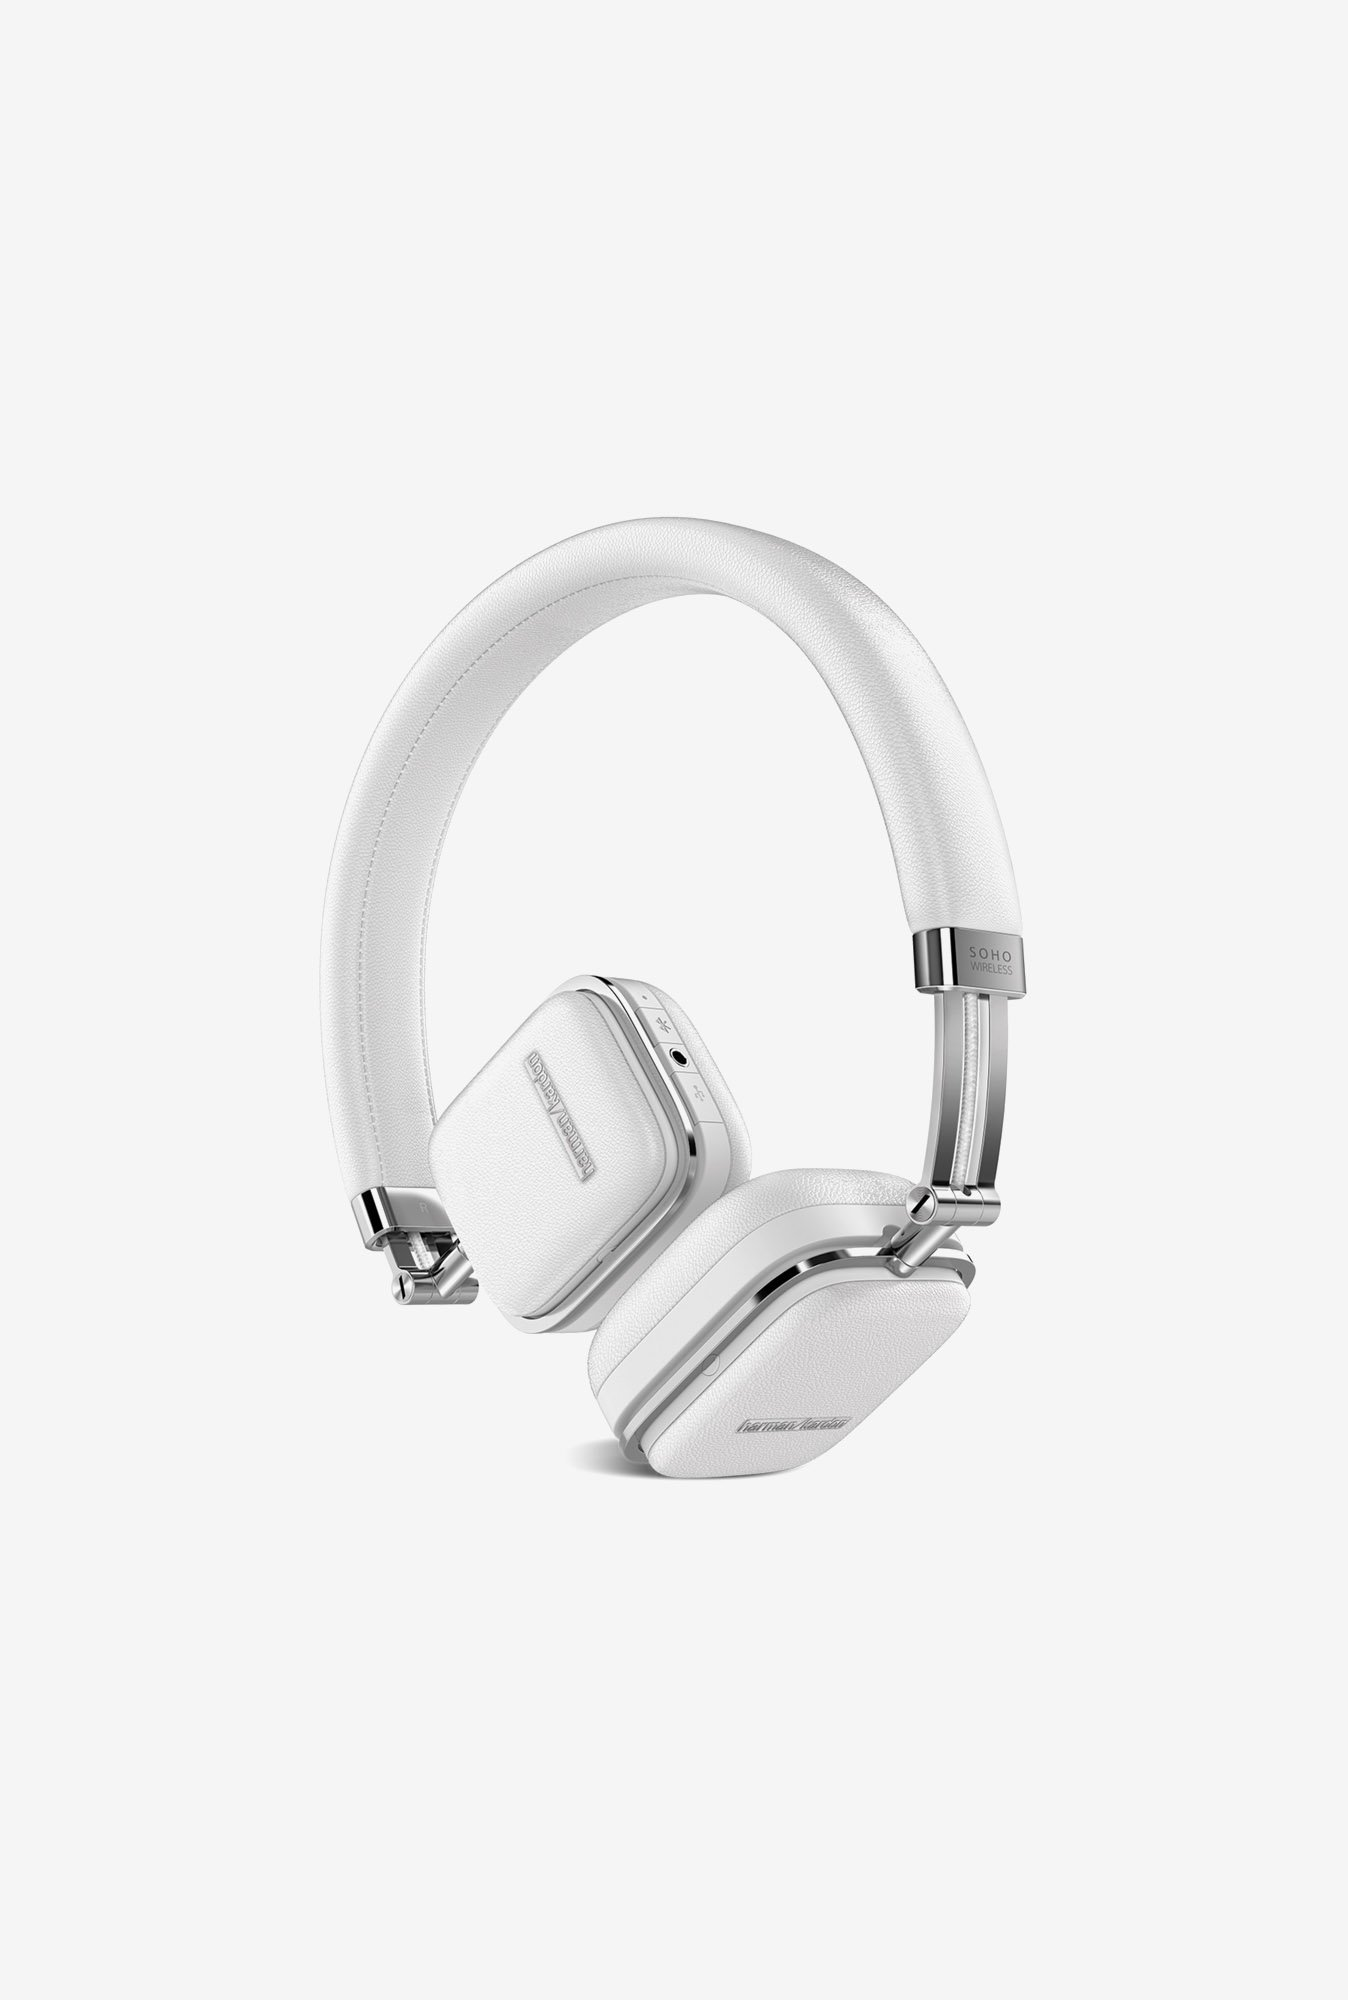 Harman Kardon Soho wireless On the Ear Headphone White